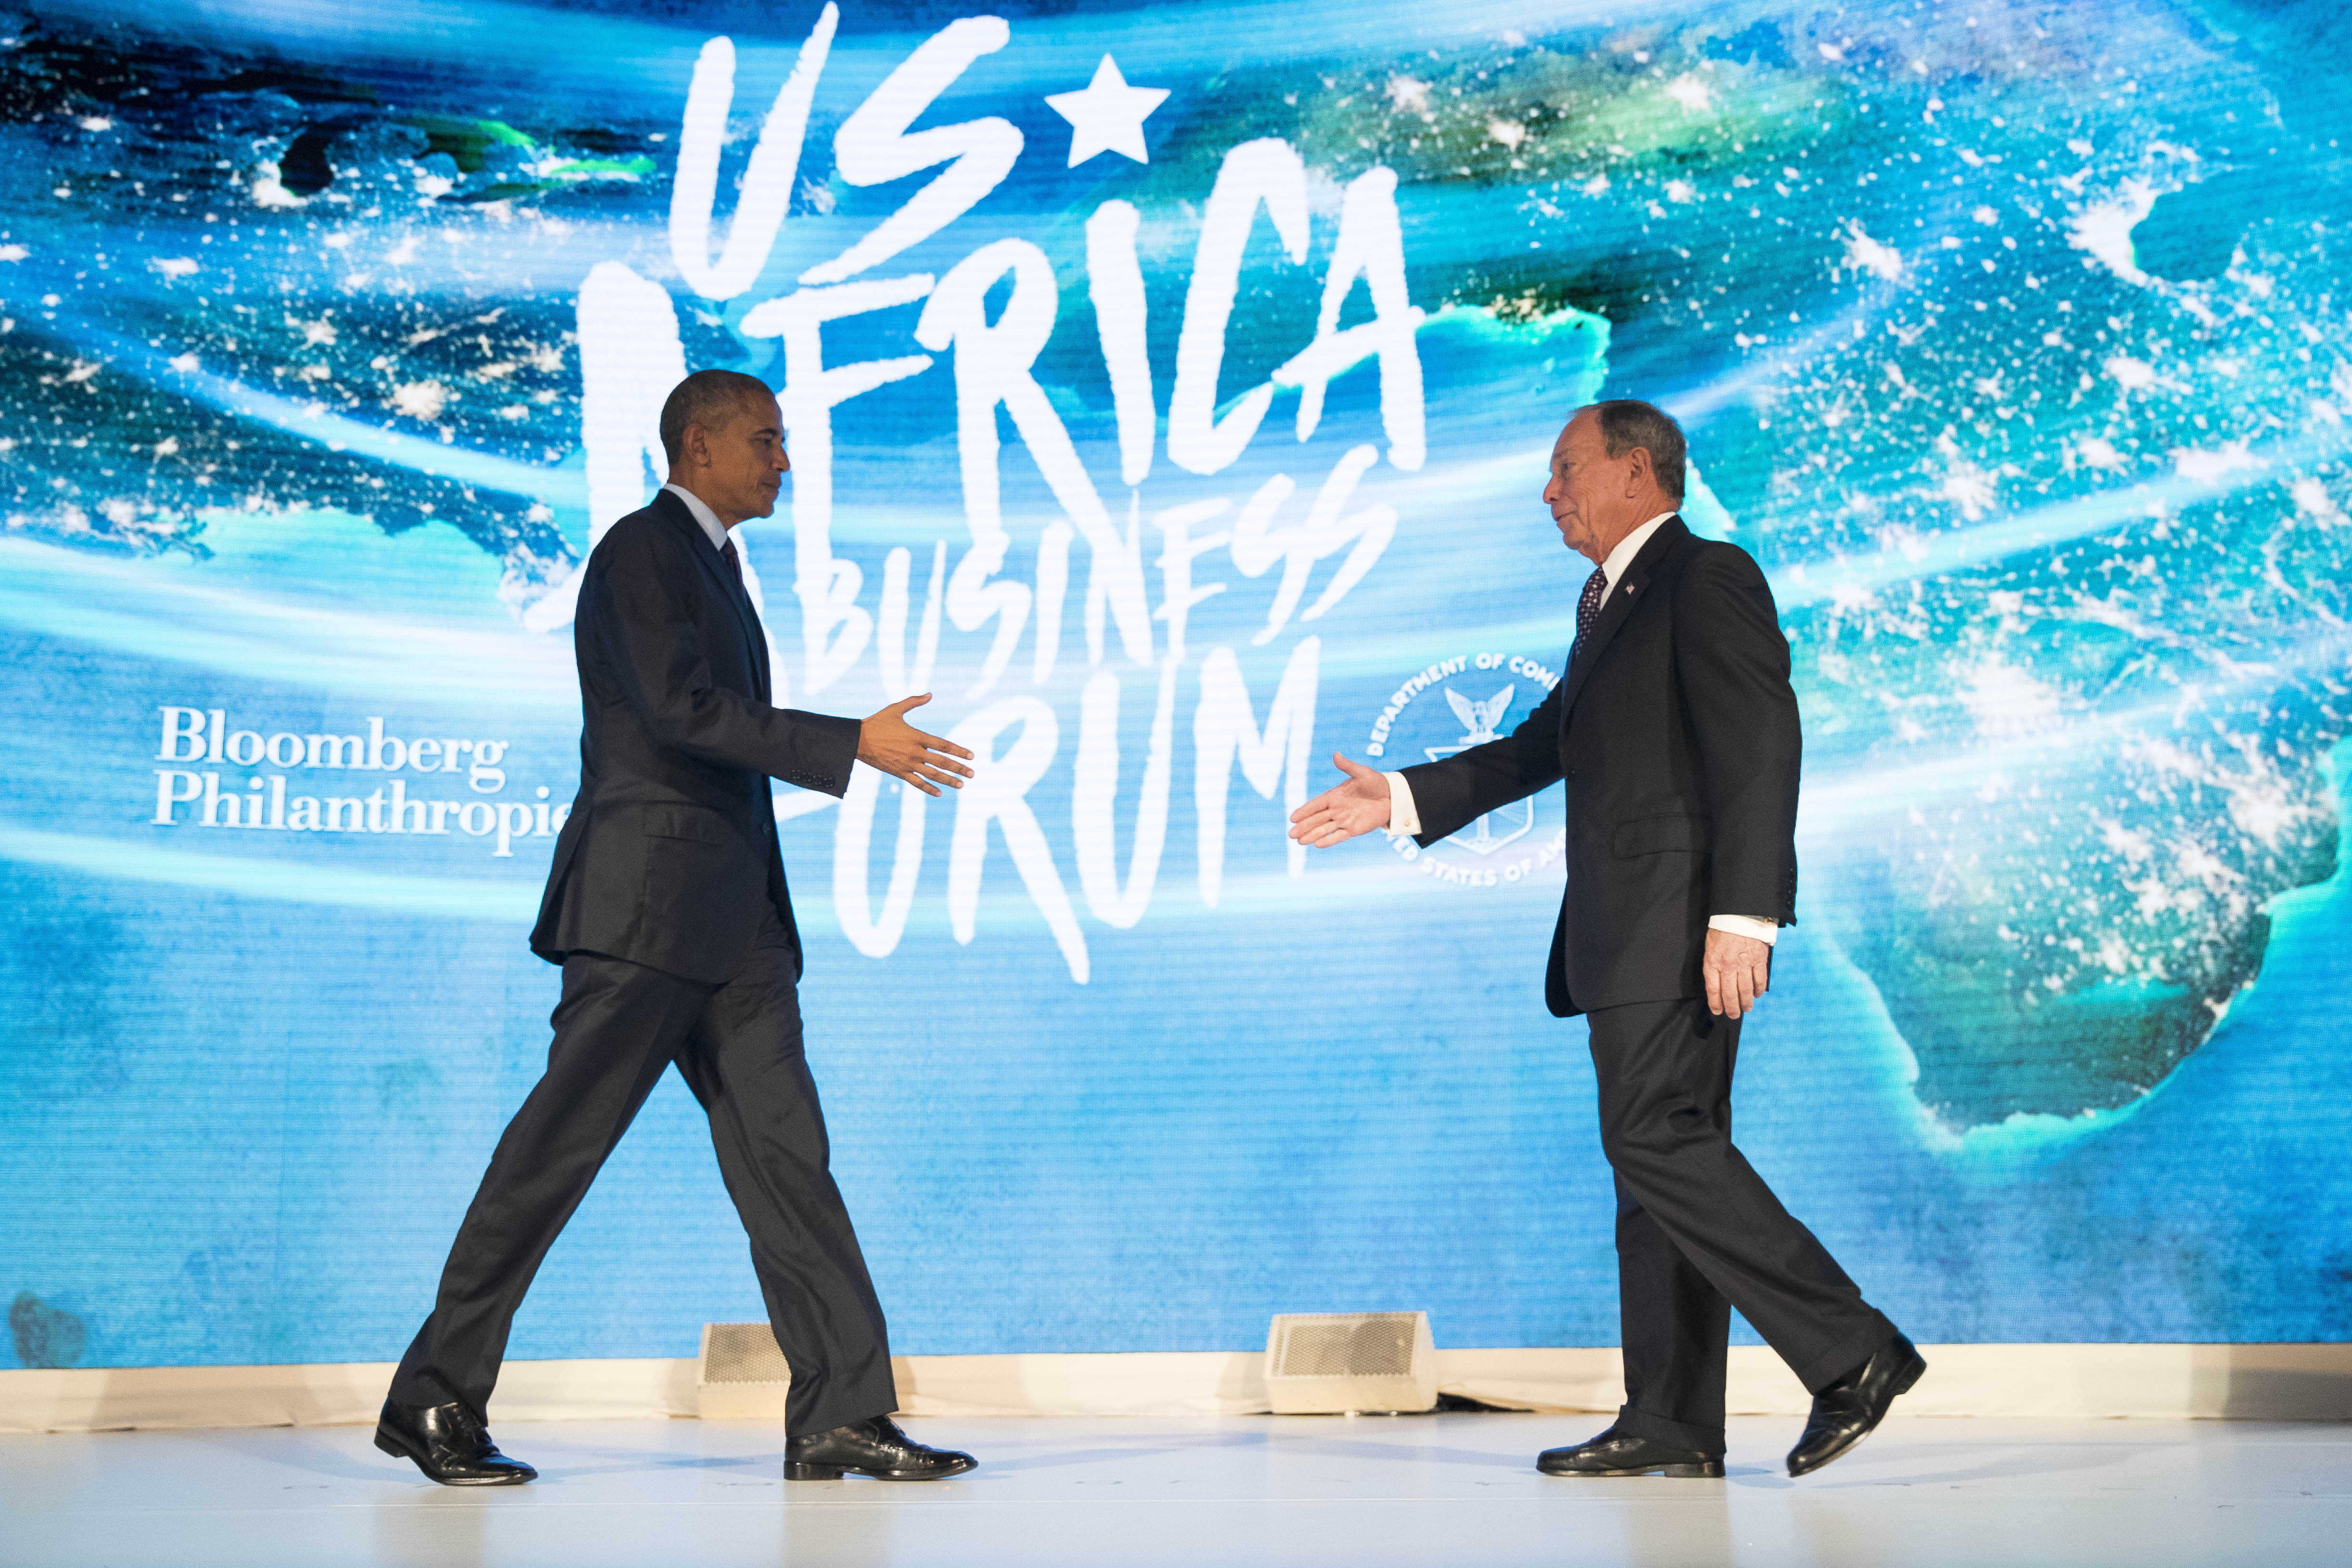 President Obama Speaks At The U.S.-Africa Business Forum In New York